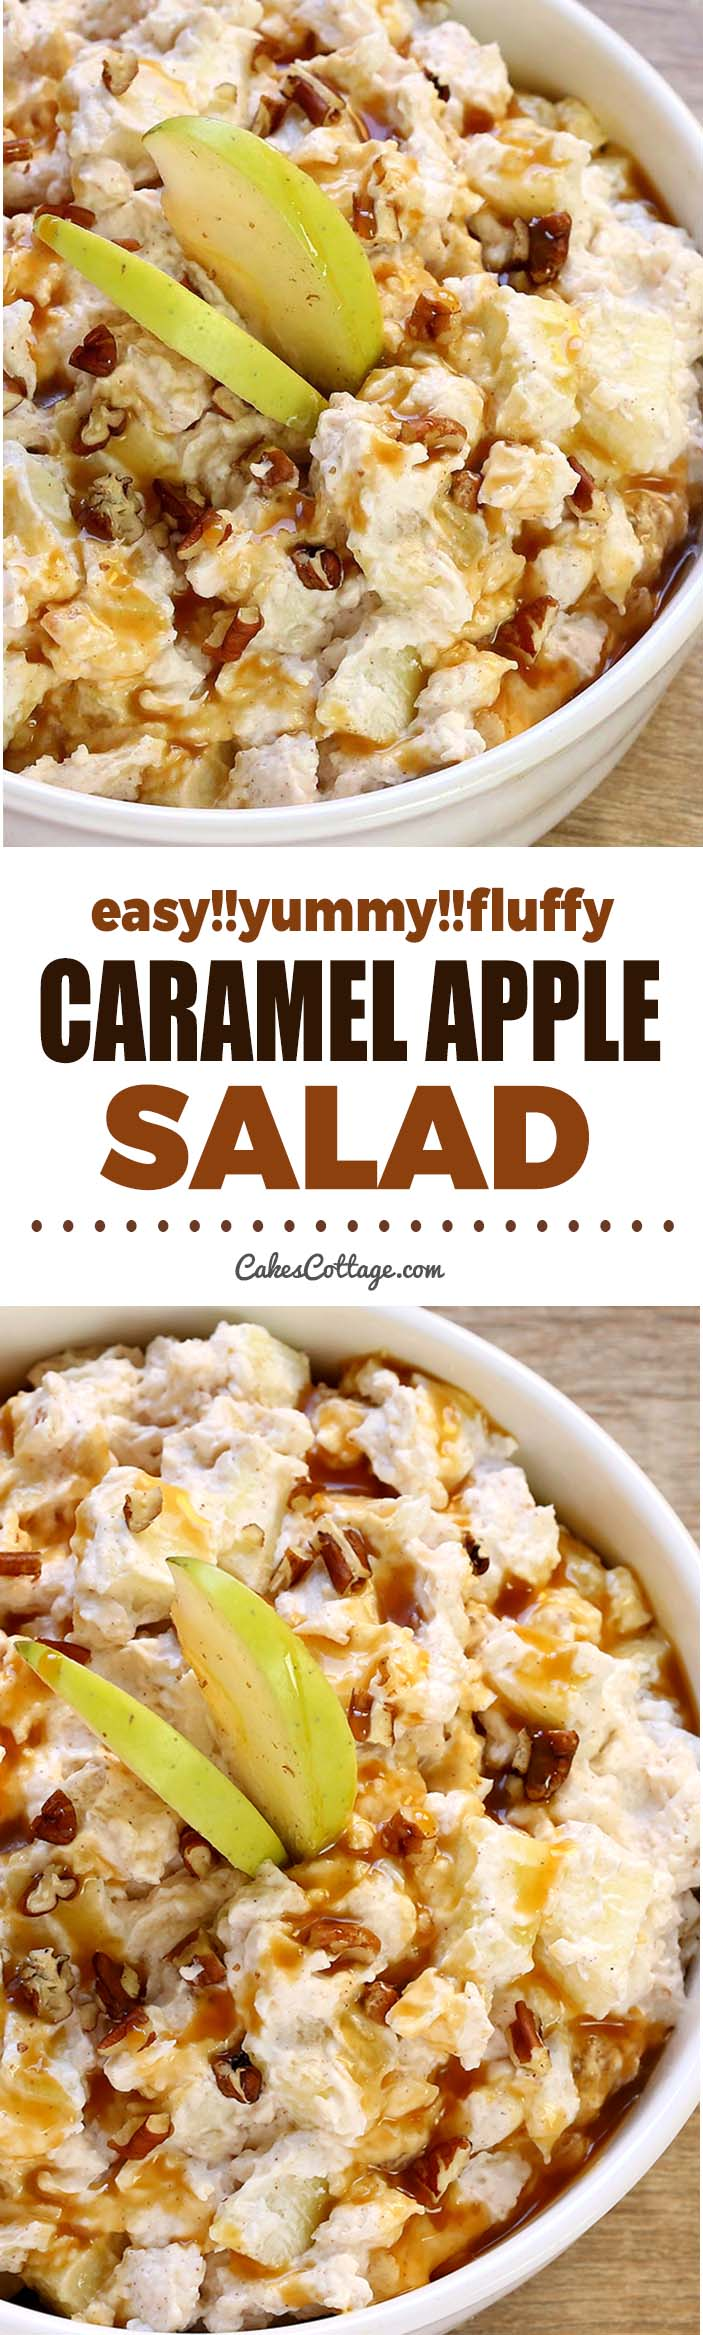 Caramel Apple Salad is a super simple, delicious fall salad! It only take a few ingredients and couple minutes to whip up, and is always a hit at parties.